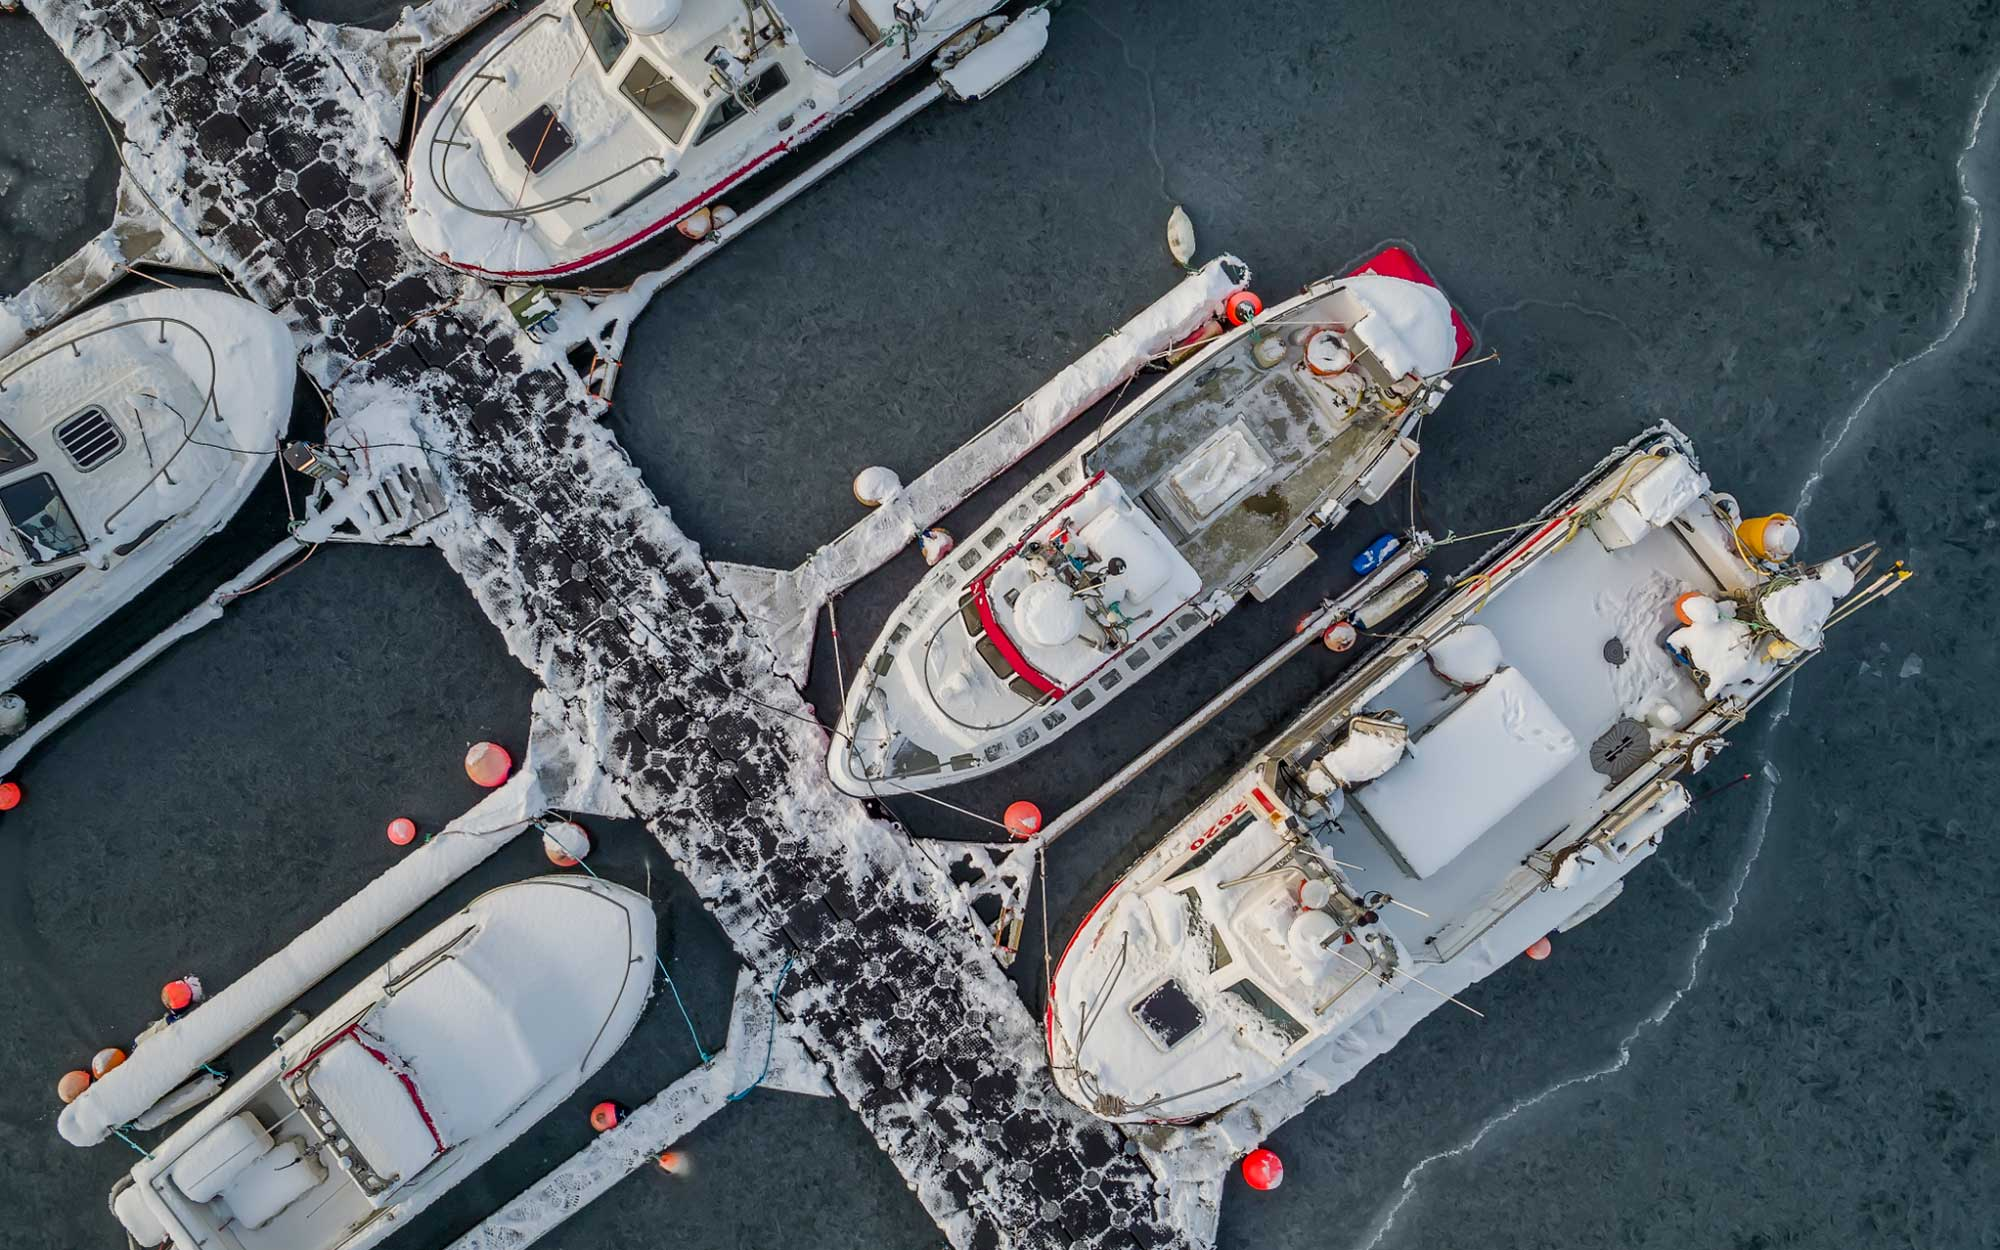 Iceland Drone Photos - Fishing Trawlers